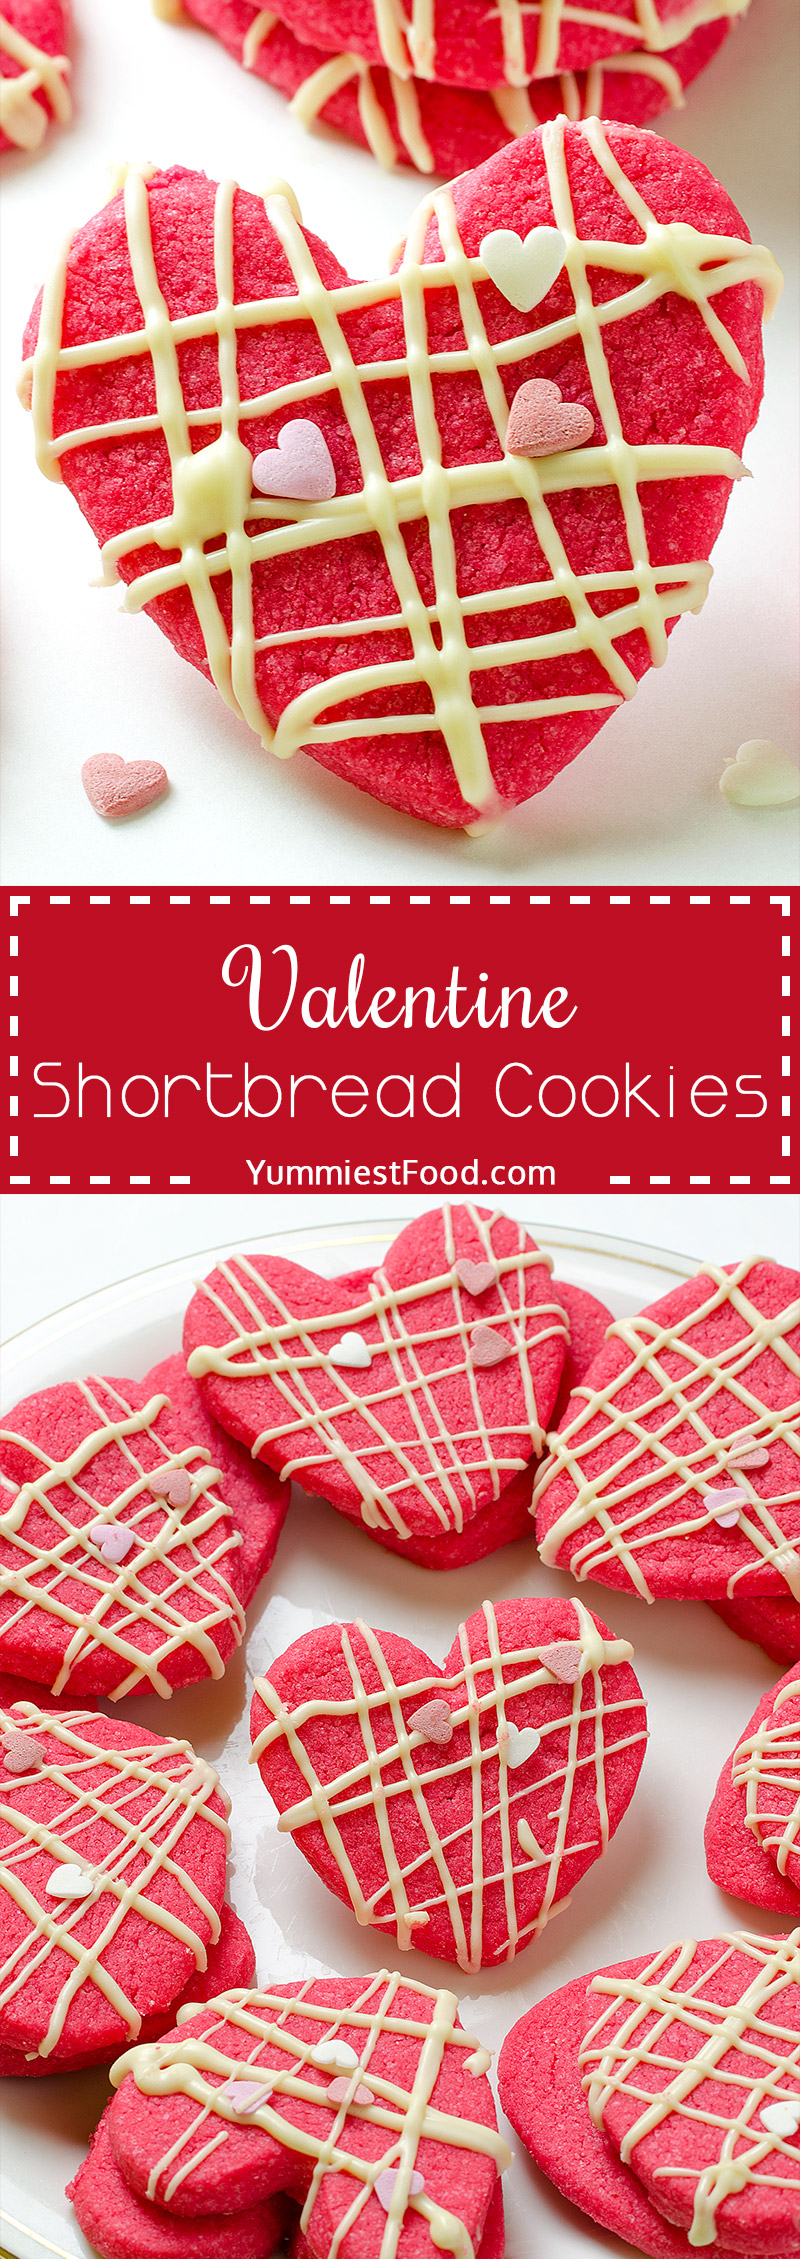 Valentine Shortbread Cookies – Make these delicious Valentine Shortbread Cookies and spend perfect moments with your partner.